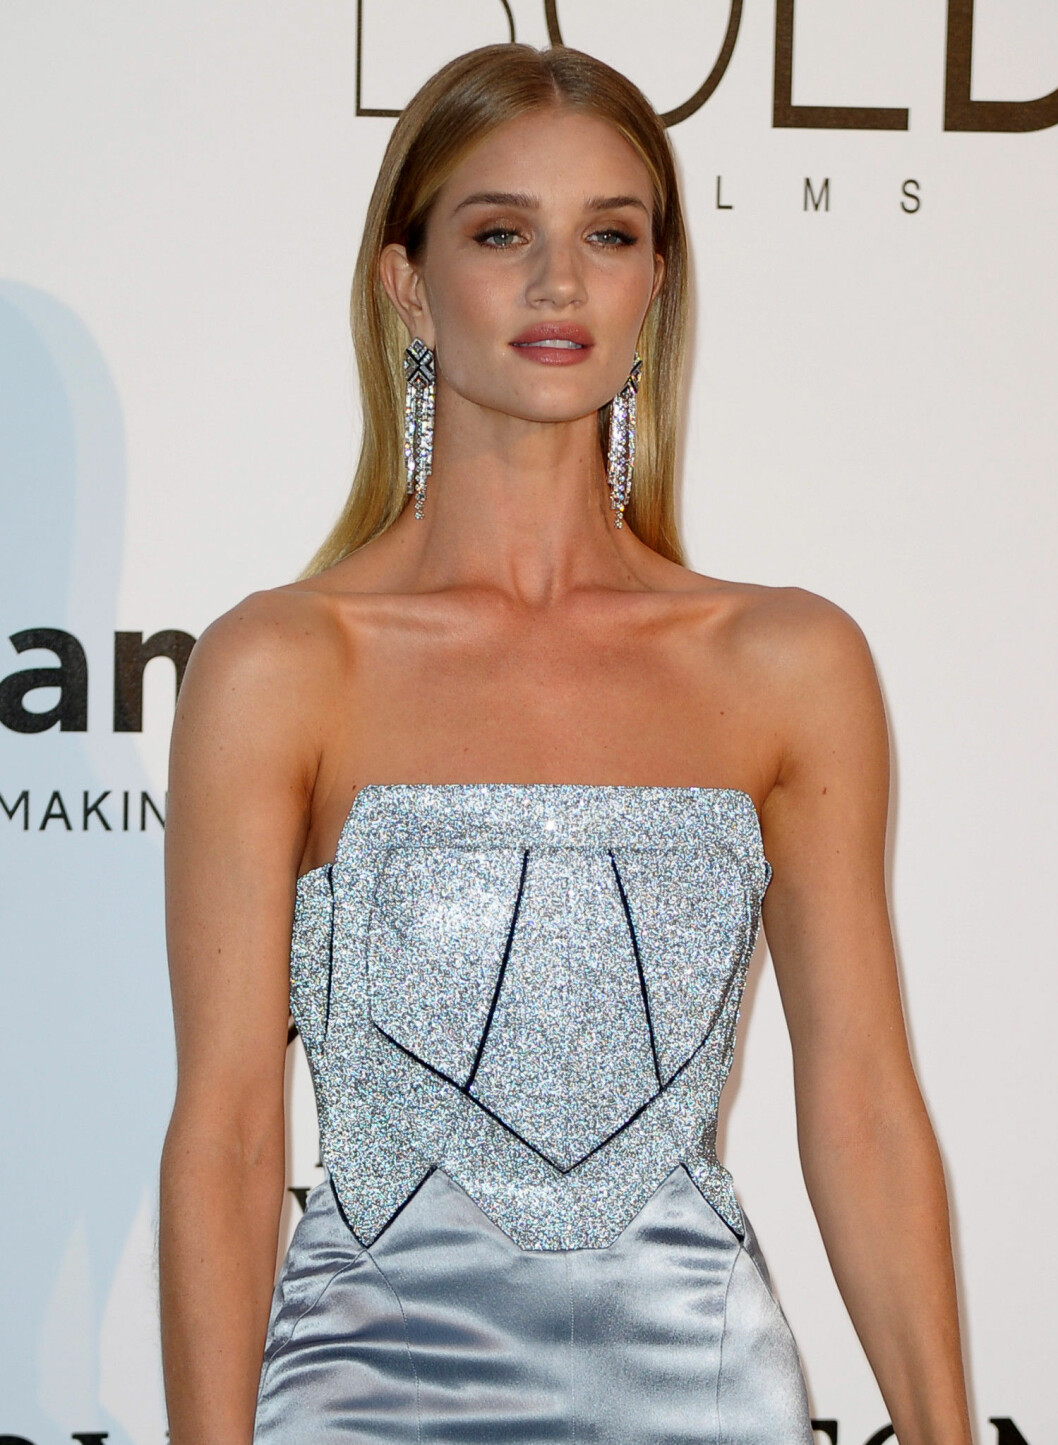 Red Carpet for the 23rd AmFar during Cannes Film Festival